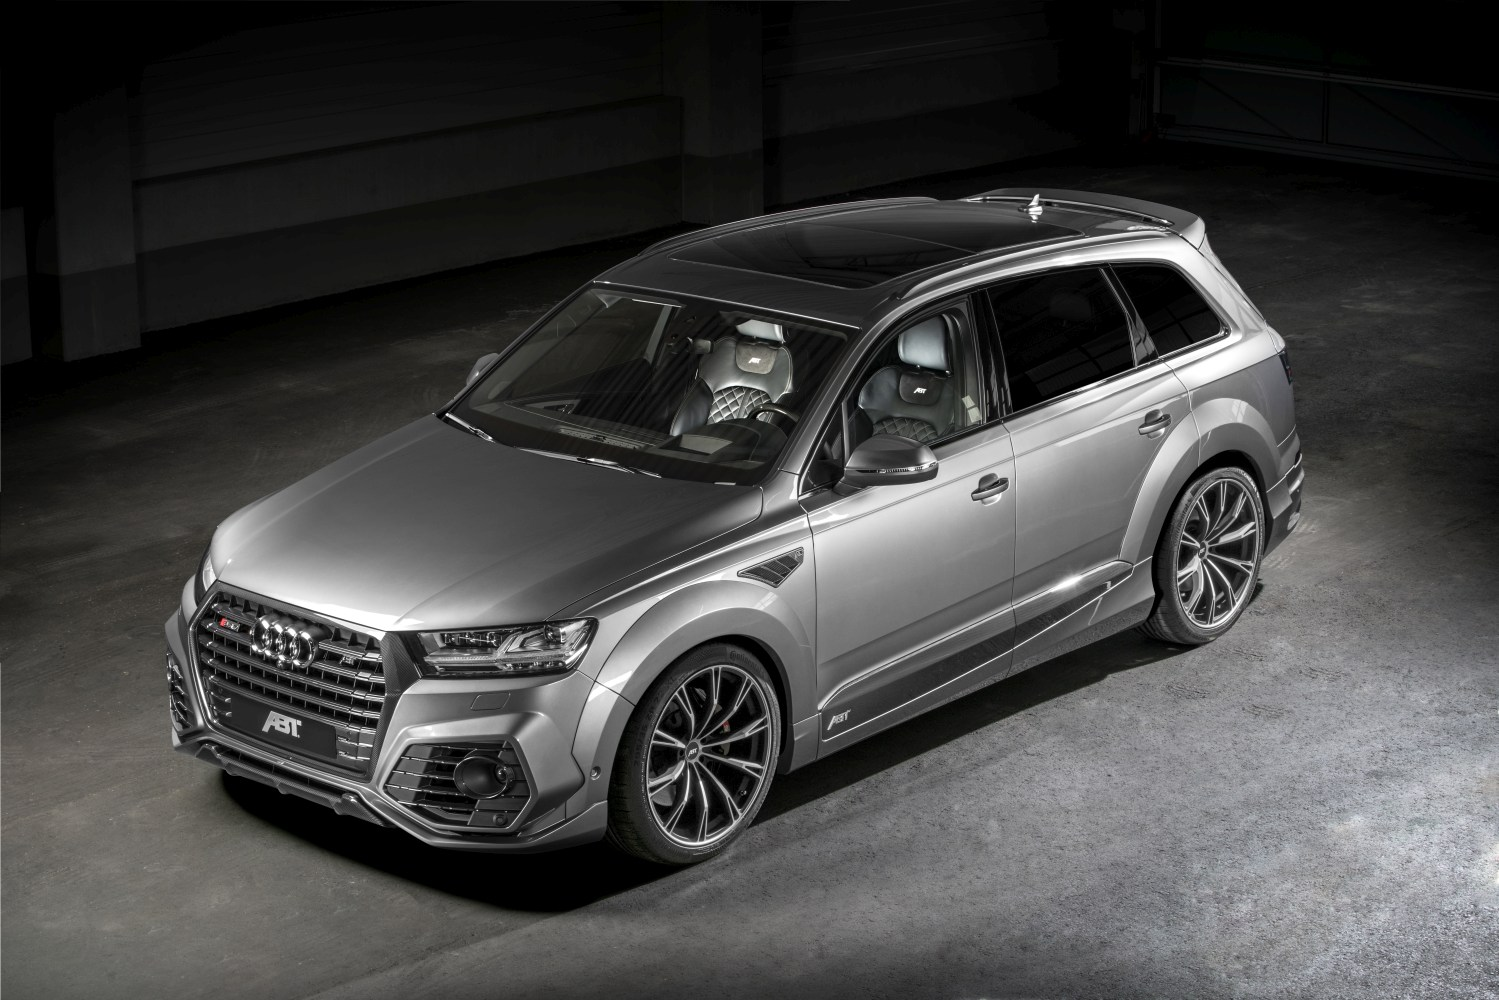 The Abt Sq7 A Super Utility Vehicle